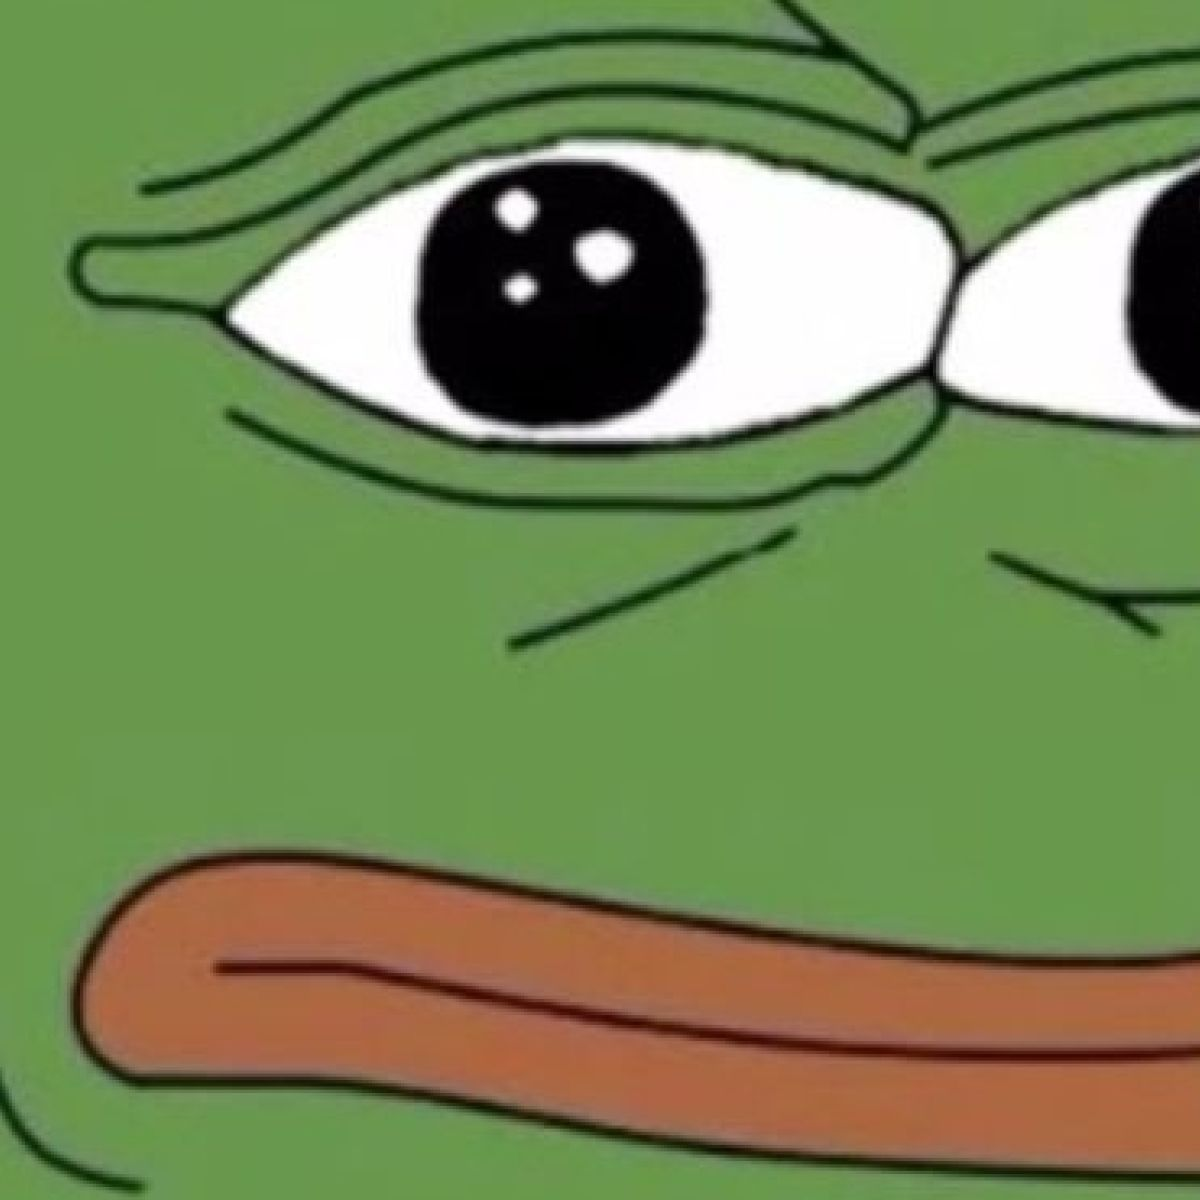 Pepe The Frog Creator Kills Off Meme Co Opted By White Supremacists